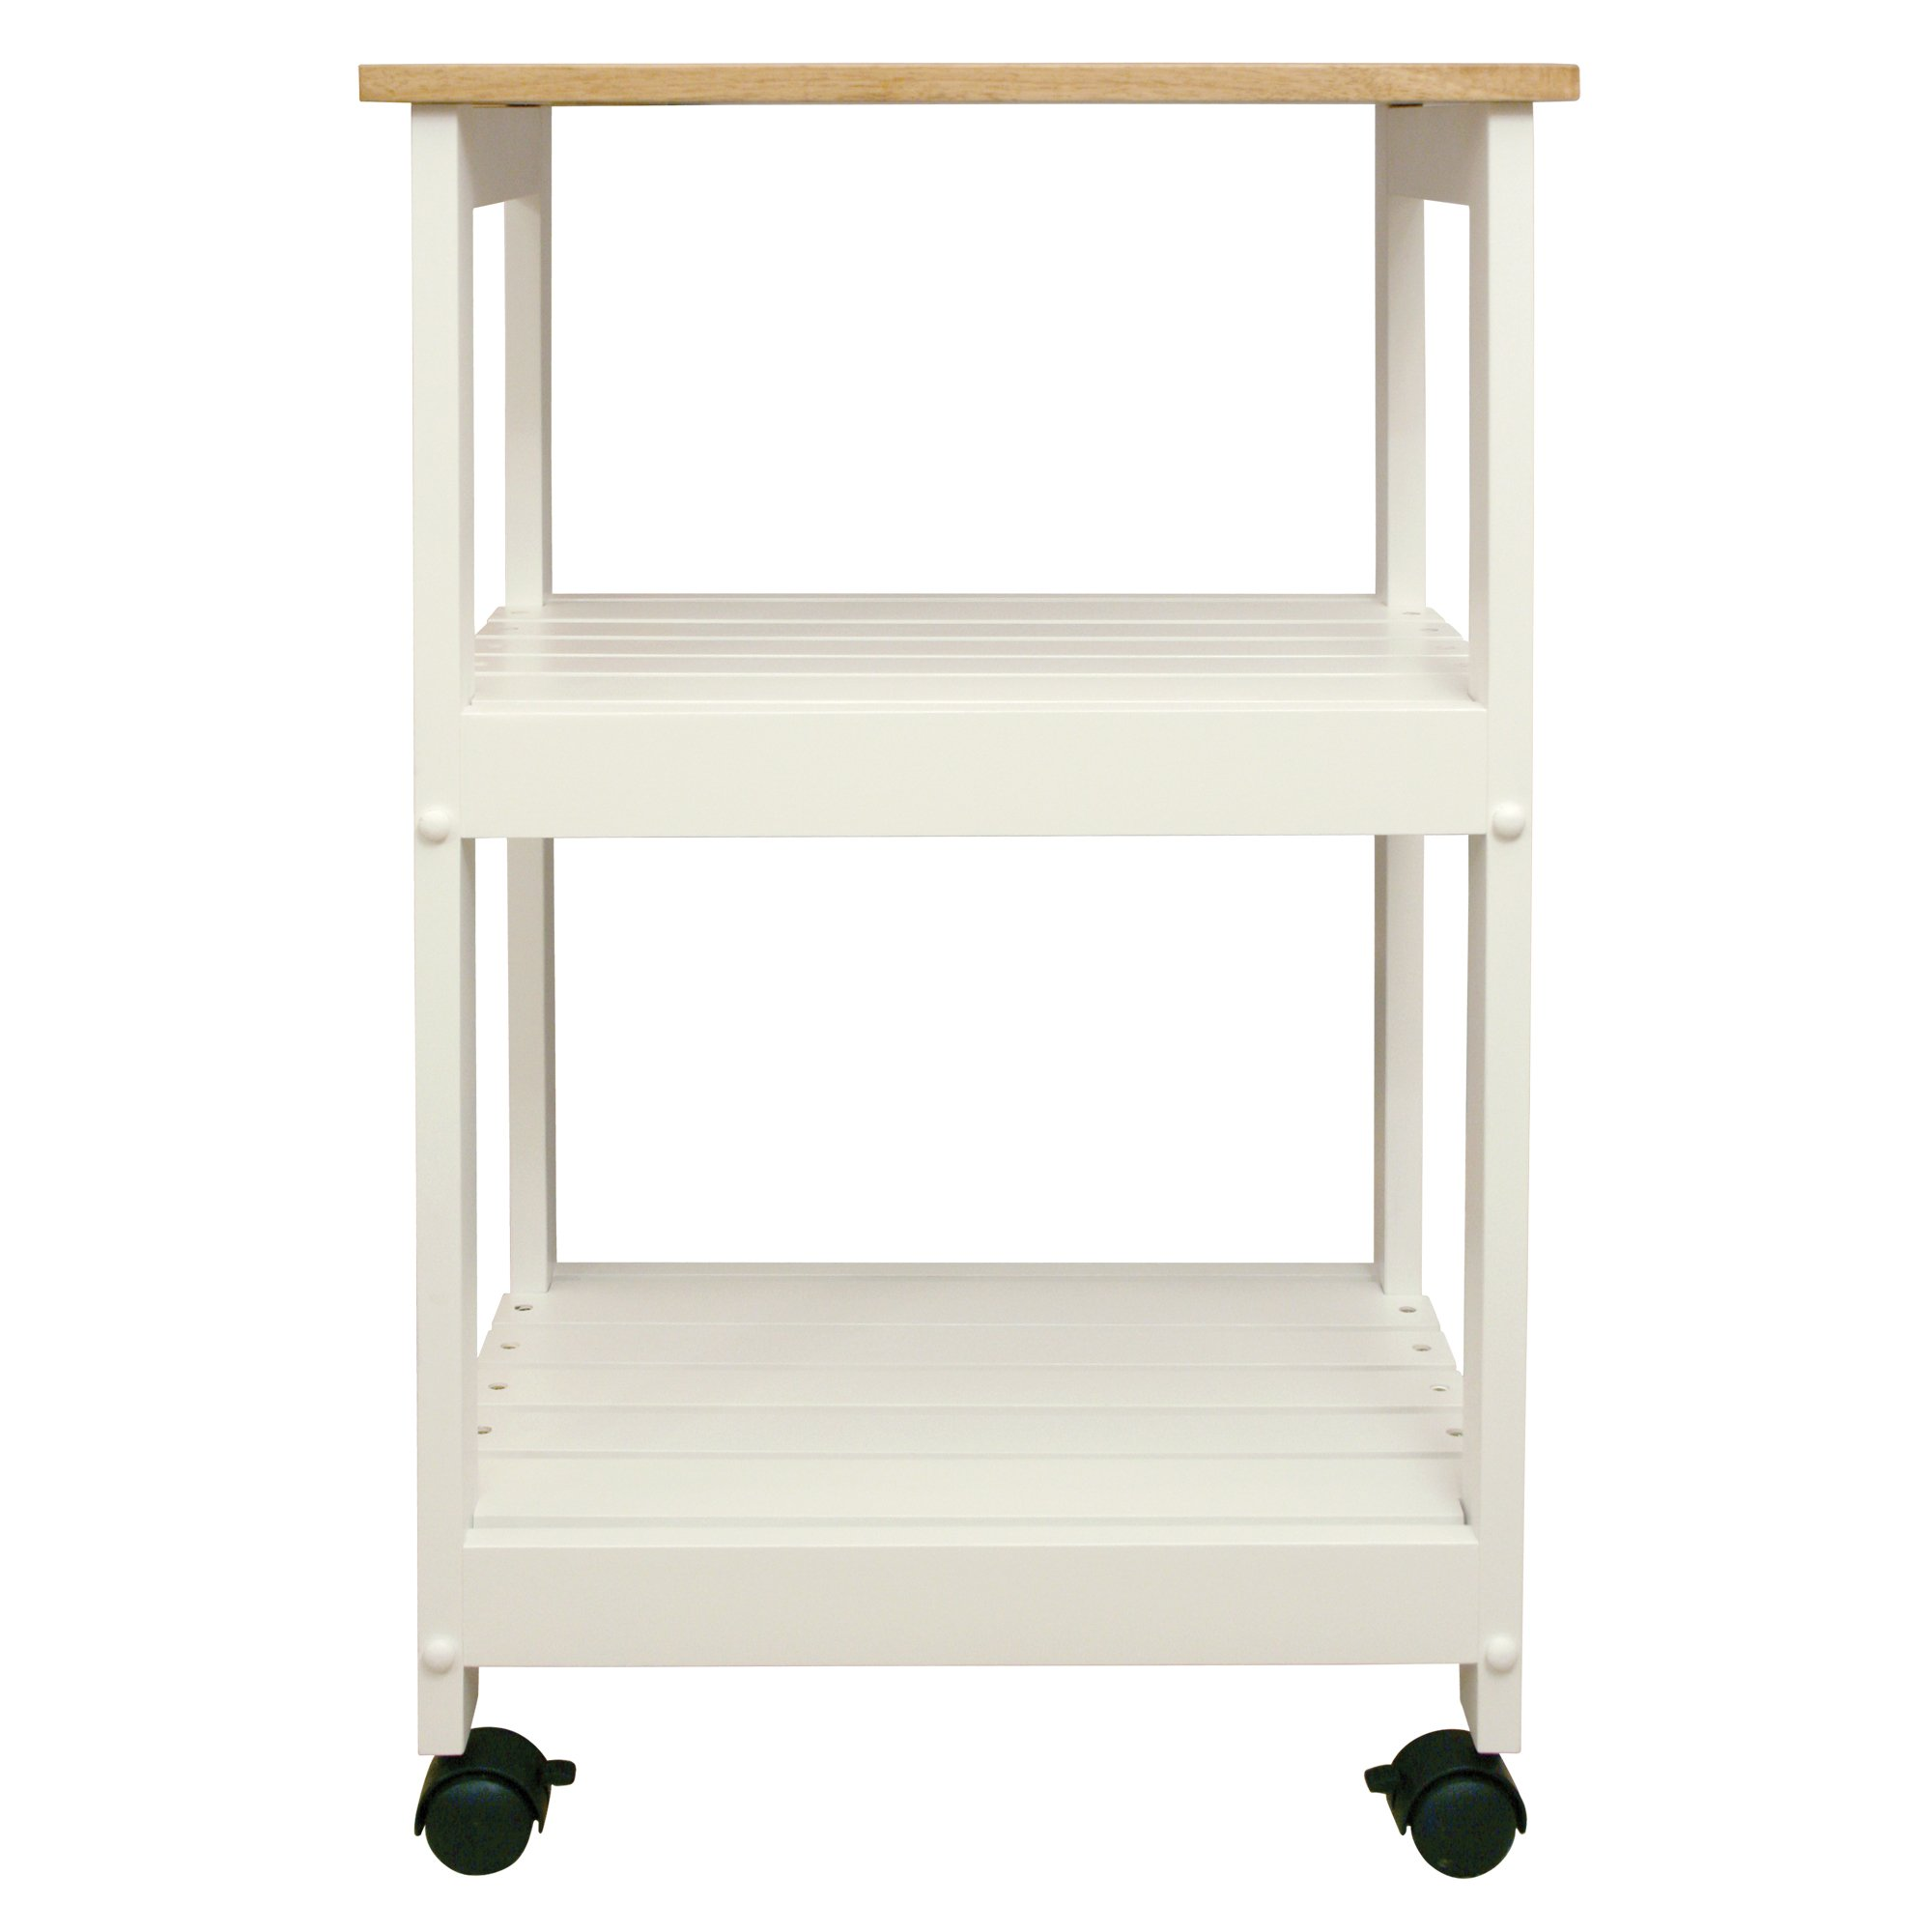 Catskill Craftsmen Utility Kitchen Cart/Microwave Stand, White Base with Natural Top by Catskill Craftsmen (Image #2)